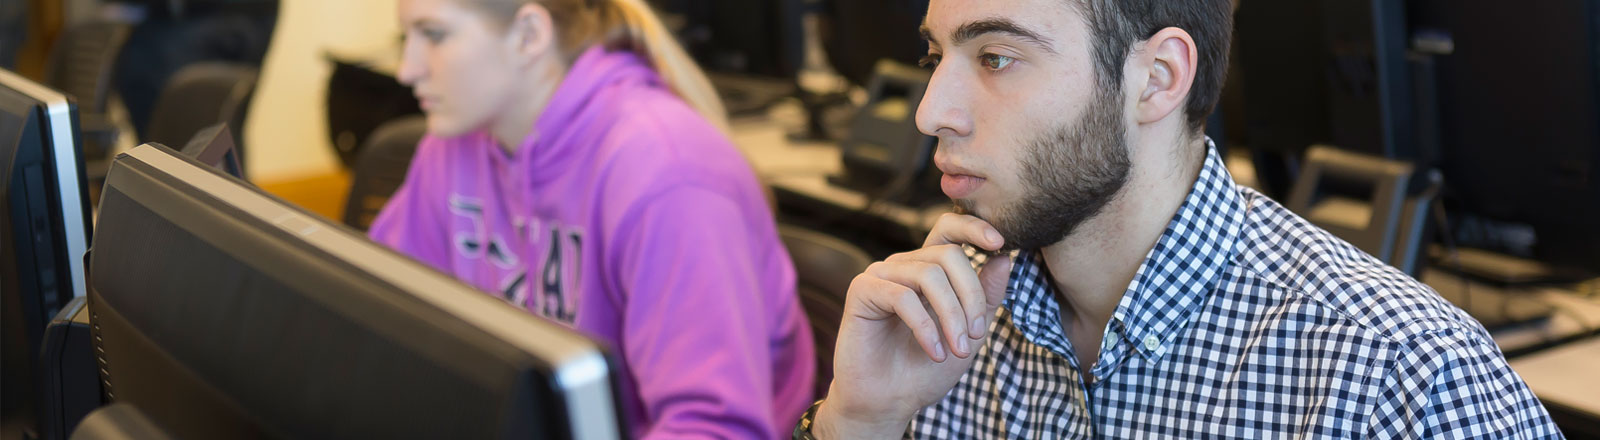 Student deep in thought at computer